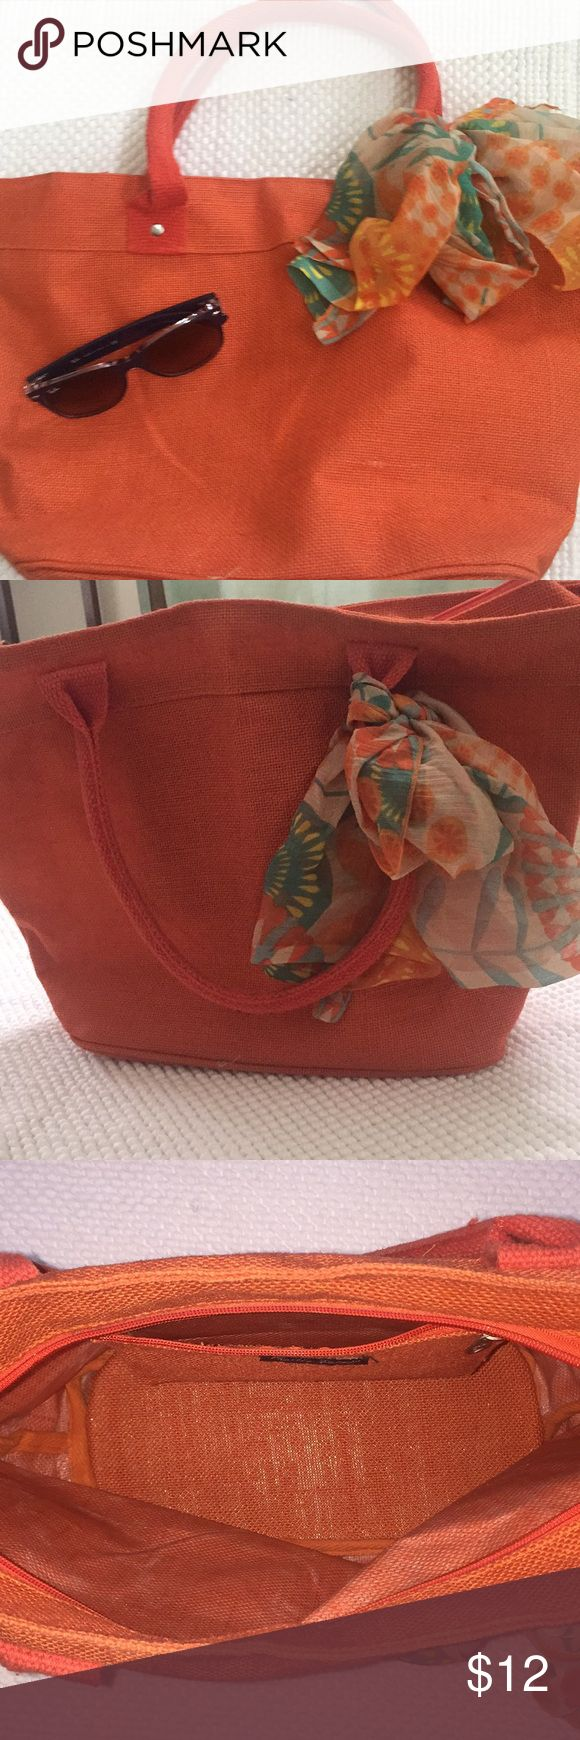 🌀BURNT ORANGE BURLAP TOTE🌀 Fun burlap tote with plastic lining inside and zippered pocket.   Cotton shoulder straps.  Use while running errands or for a beach bag! Charlie Paige Bags Totes